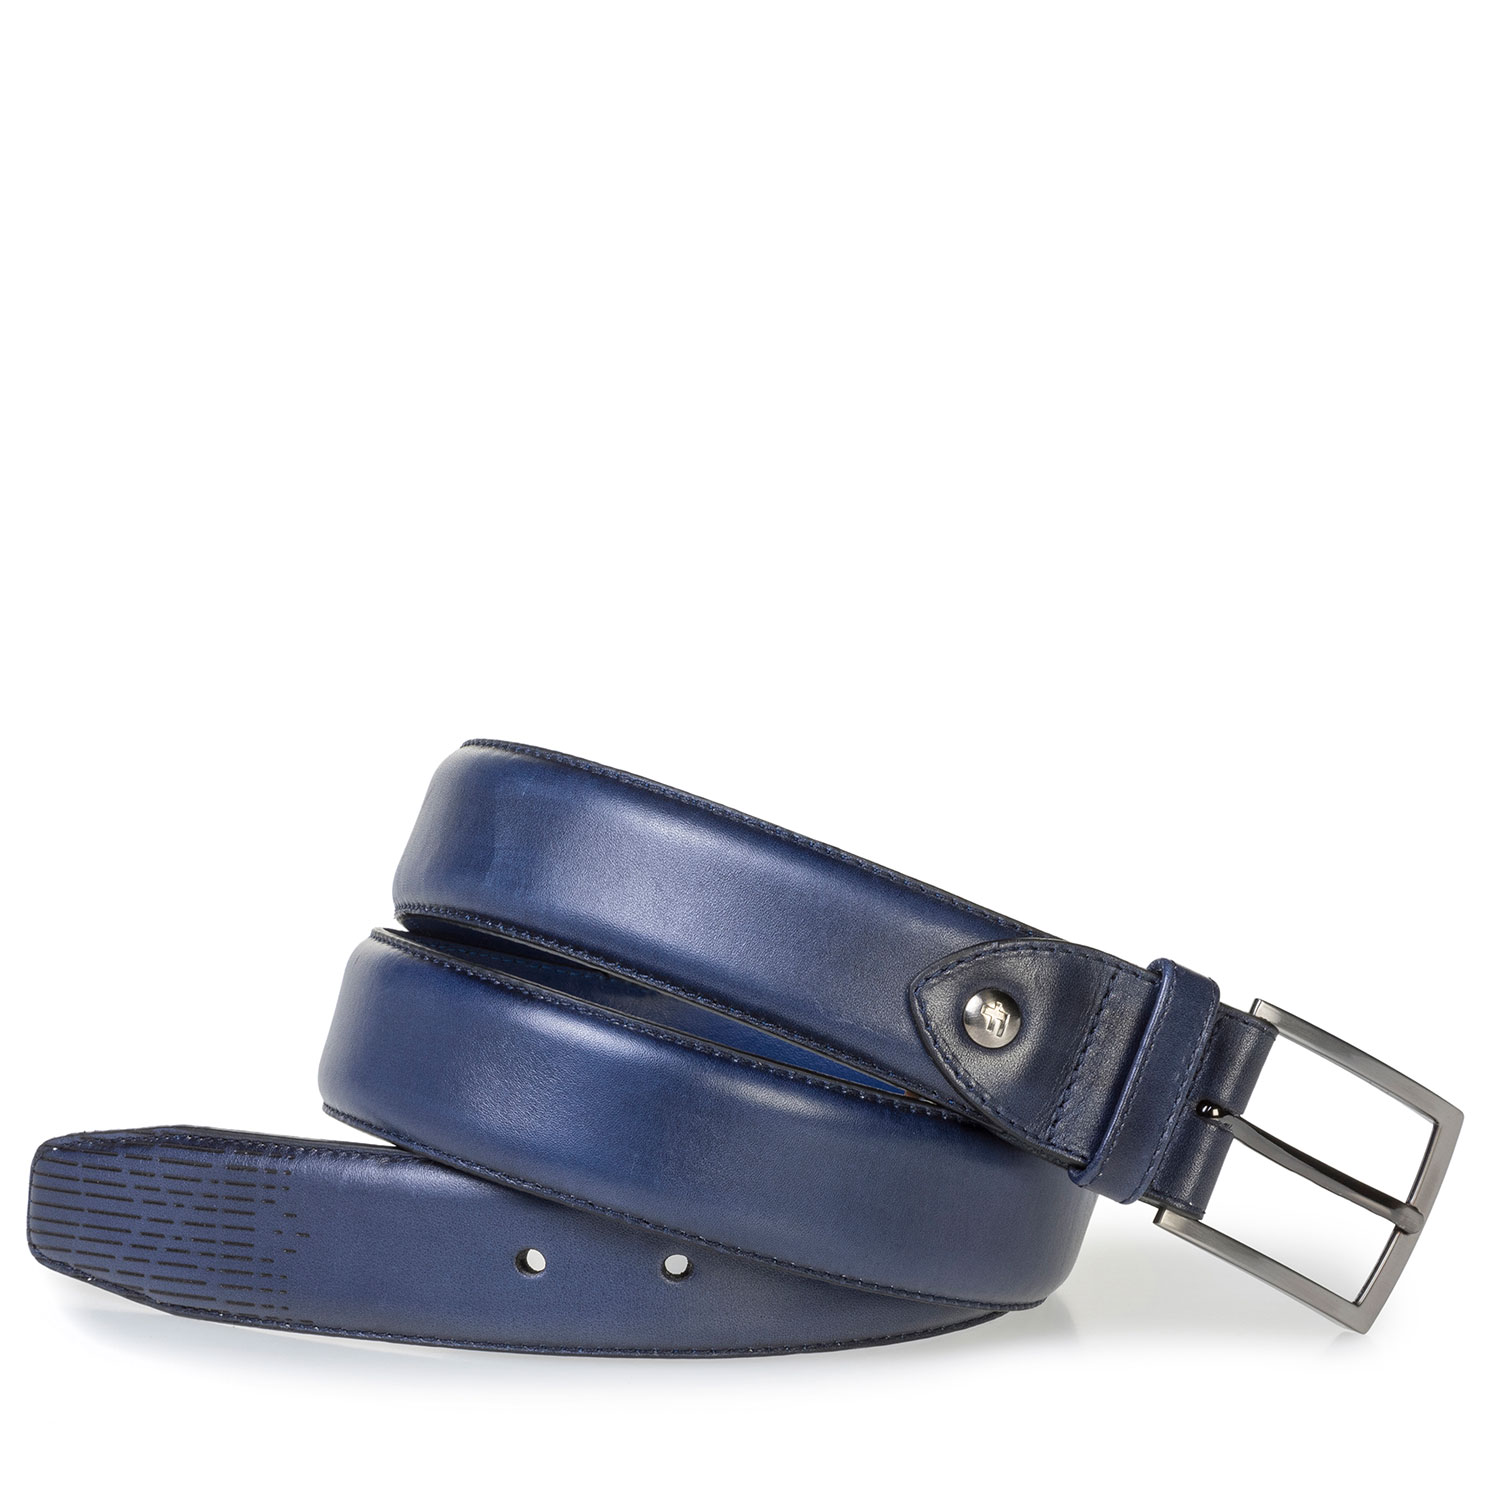 75214/01 - Dark blue leather belt